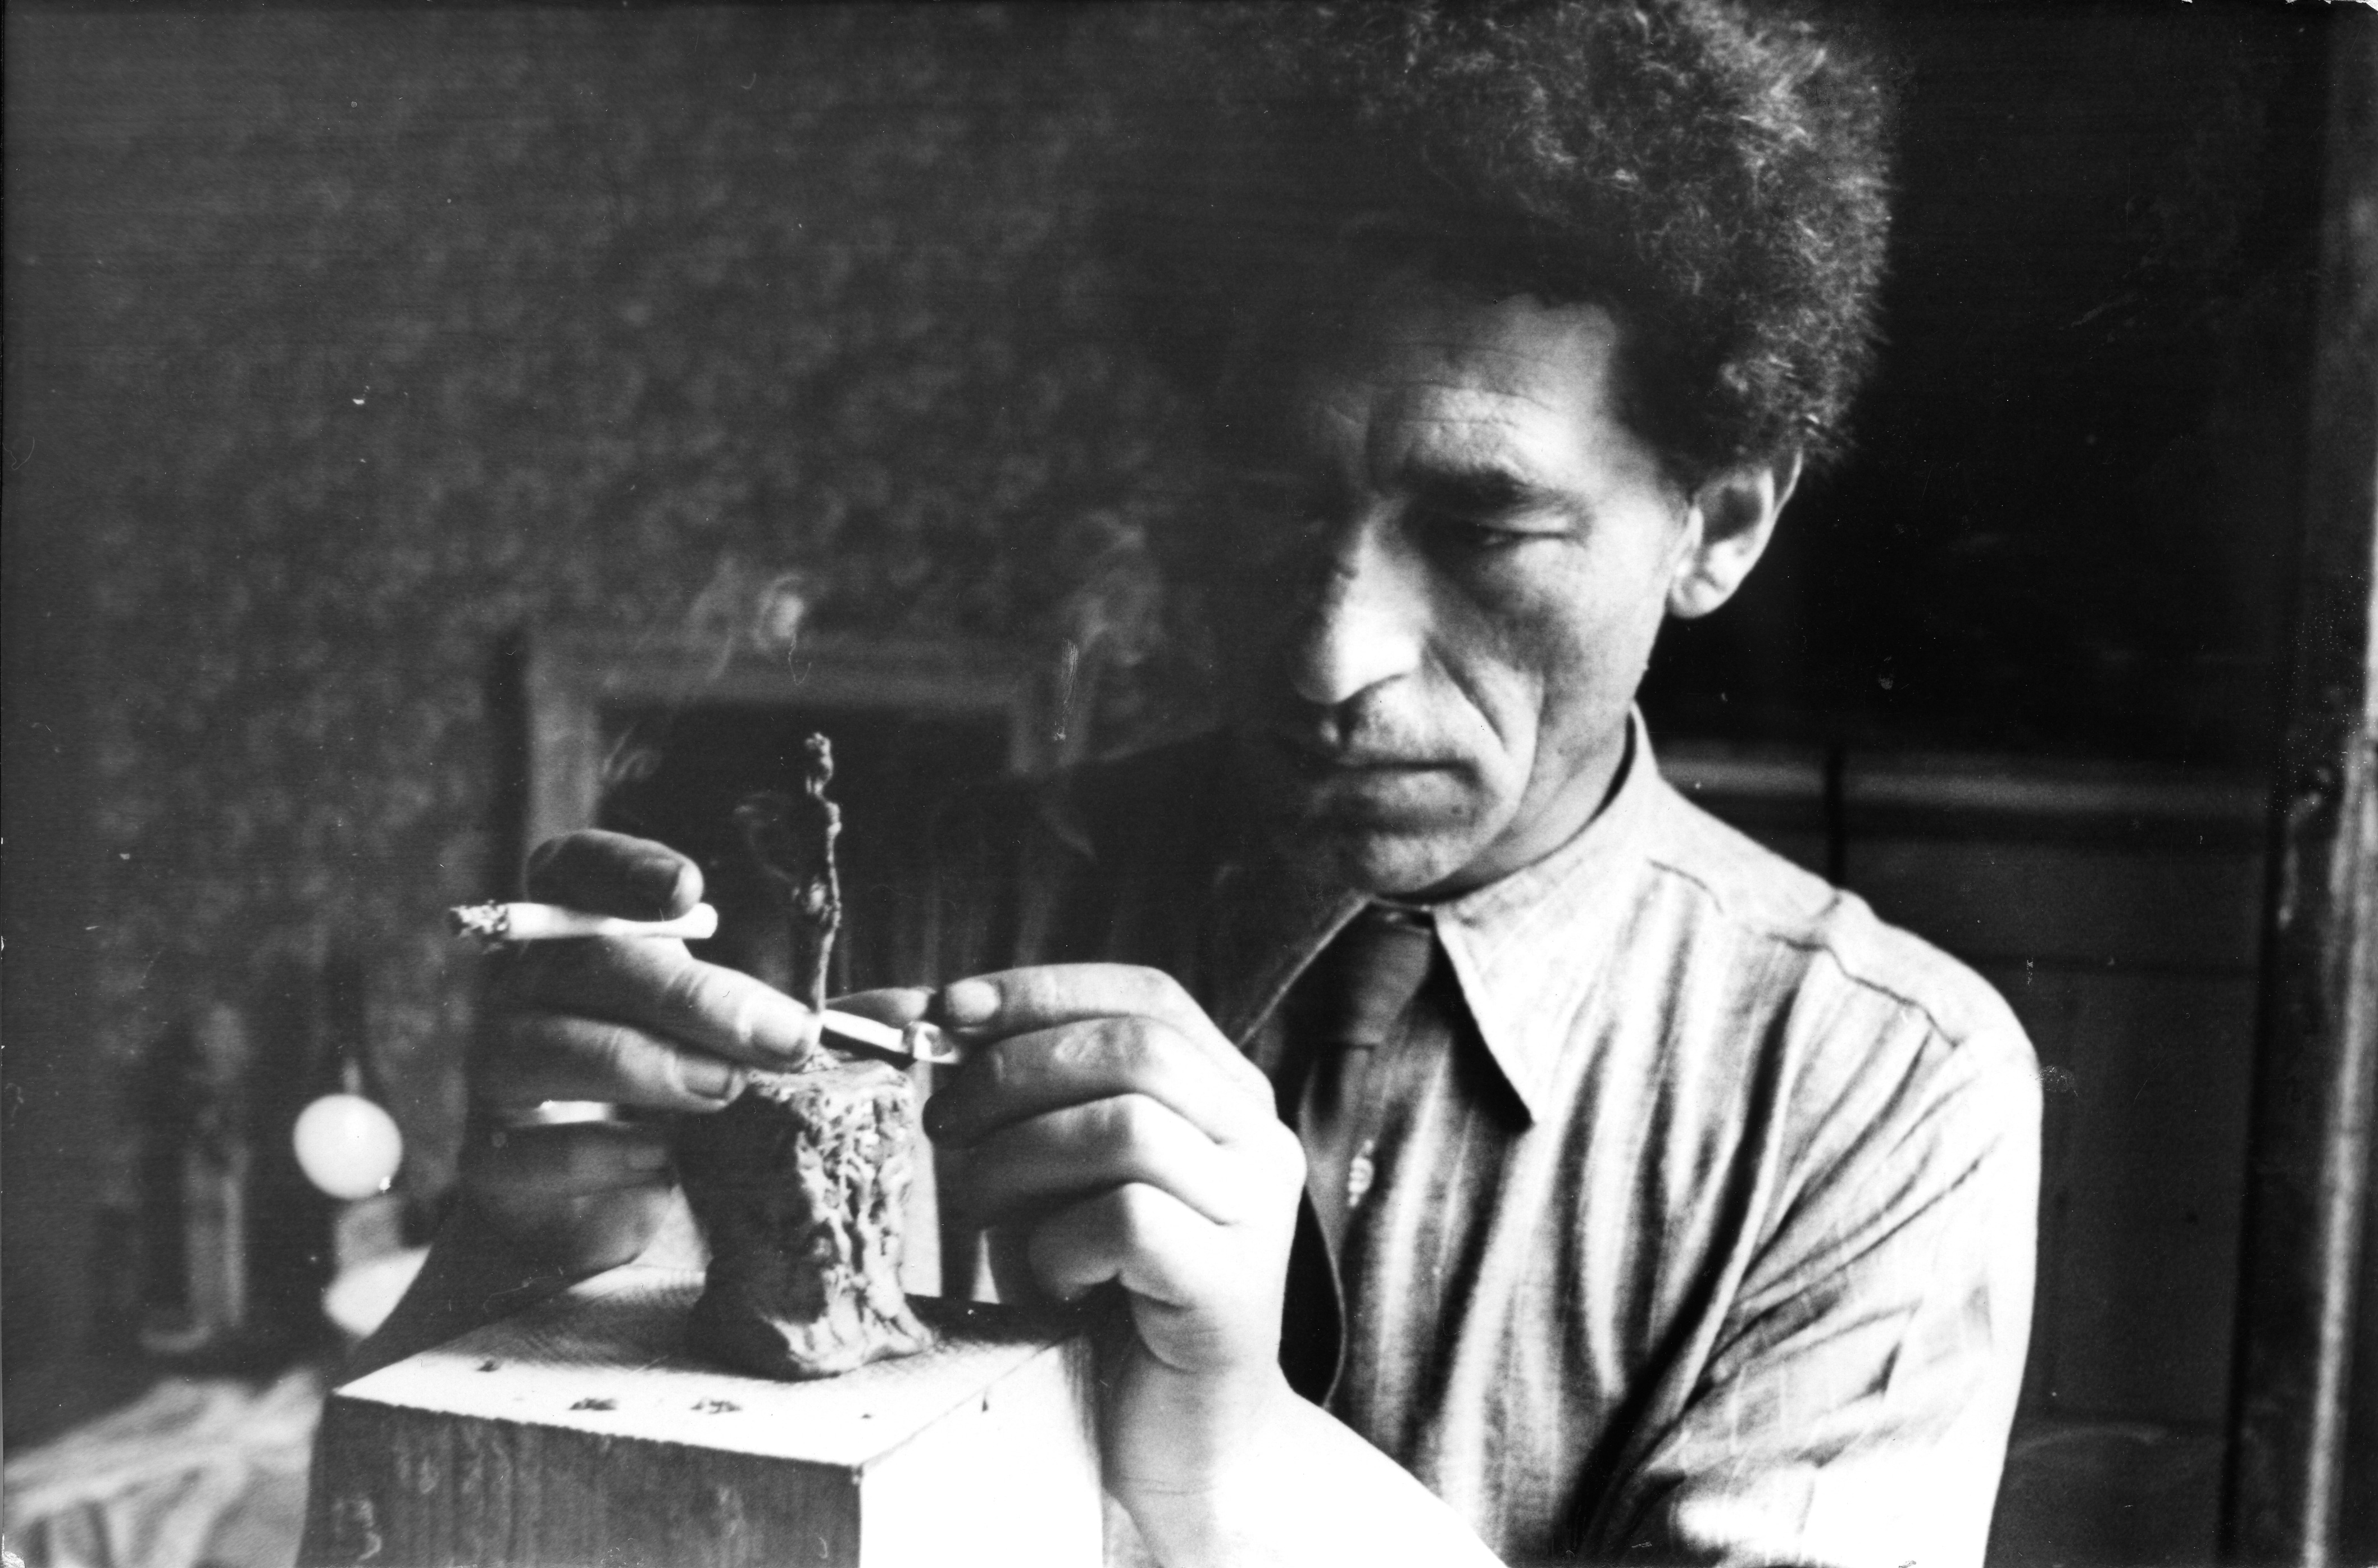 Small Is Beautiful: Luxembourg & Dayan Will Stage Show of Alberto Giacometti's Tiniest Works, With Urs Fischer Exhibition Design